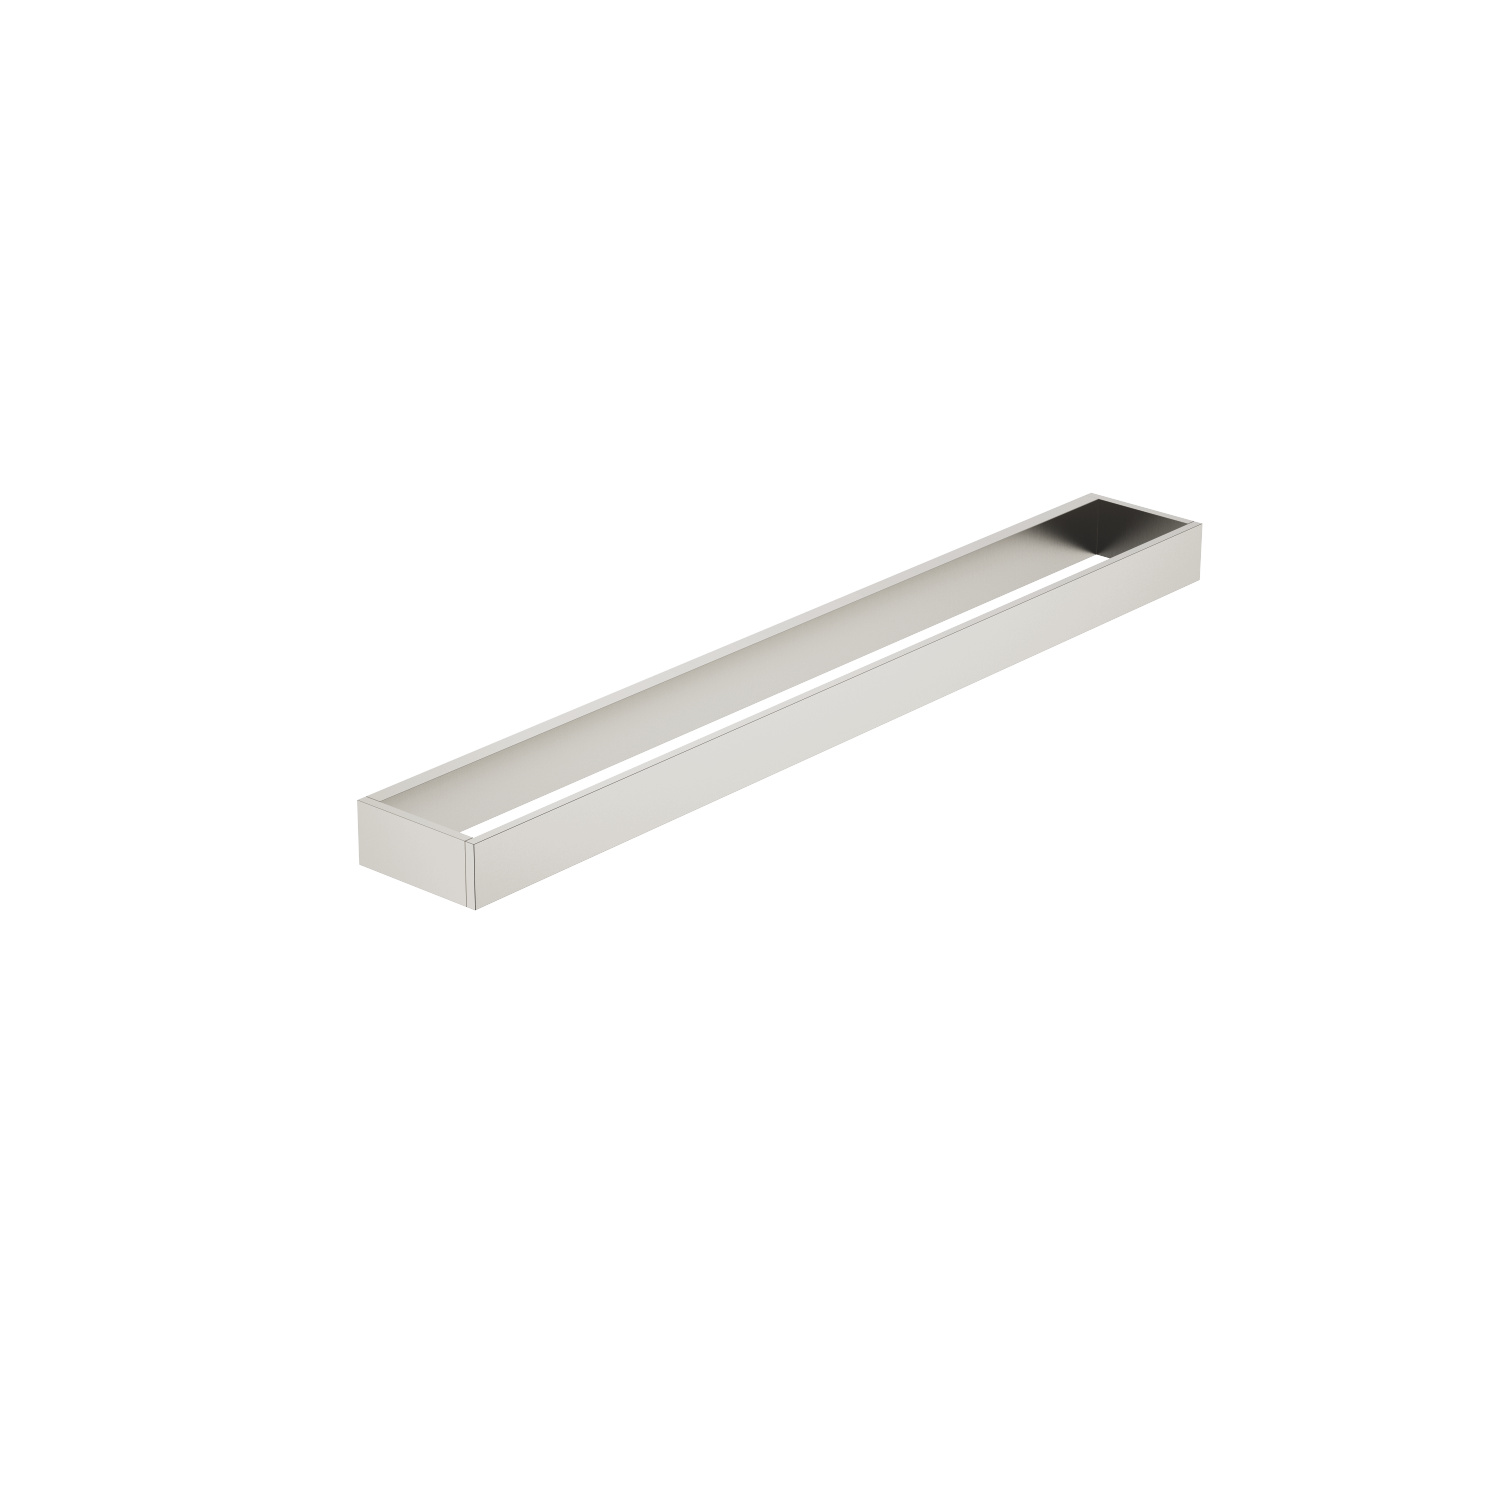 Towel bar - platinum matt